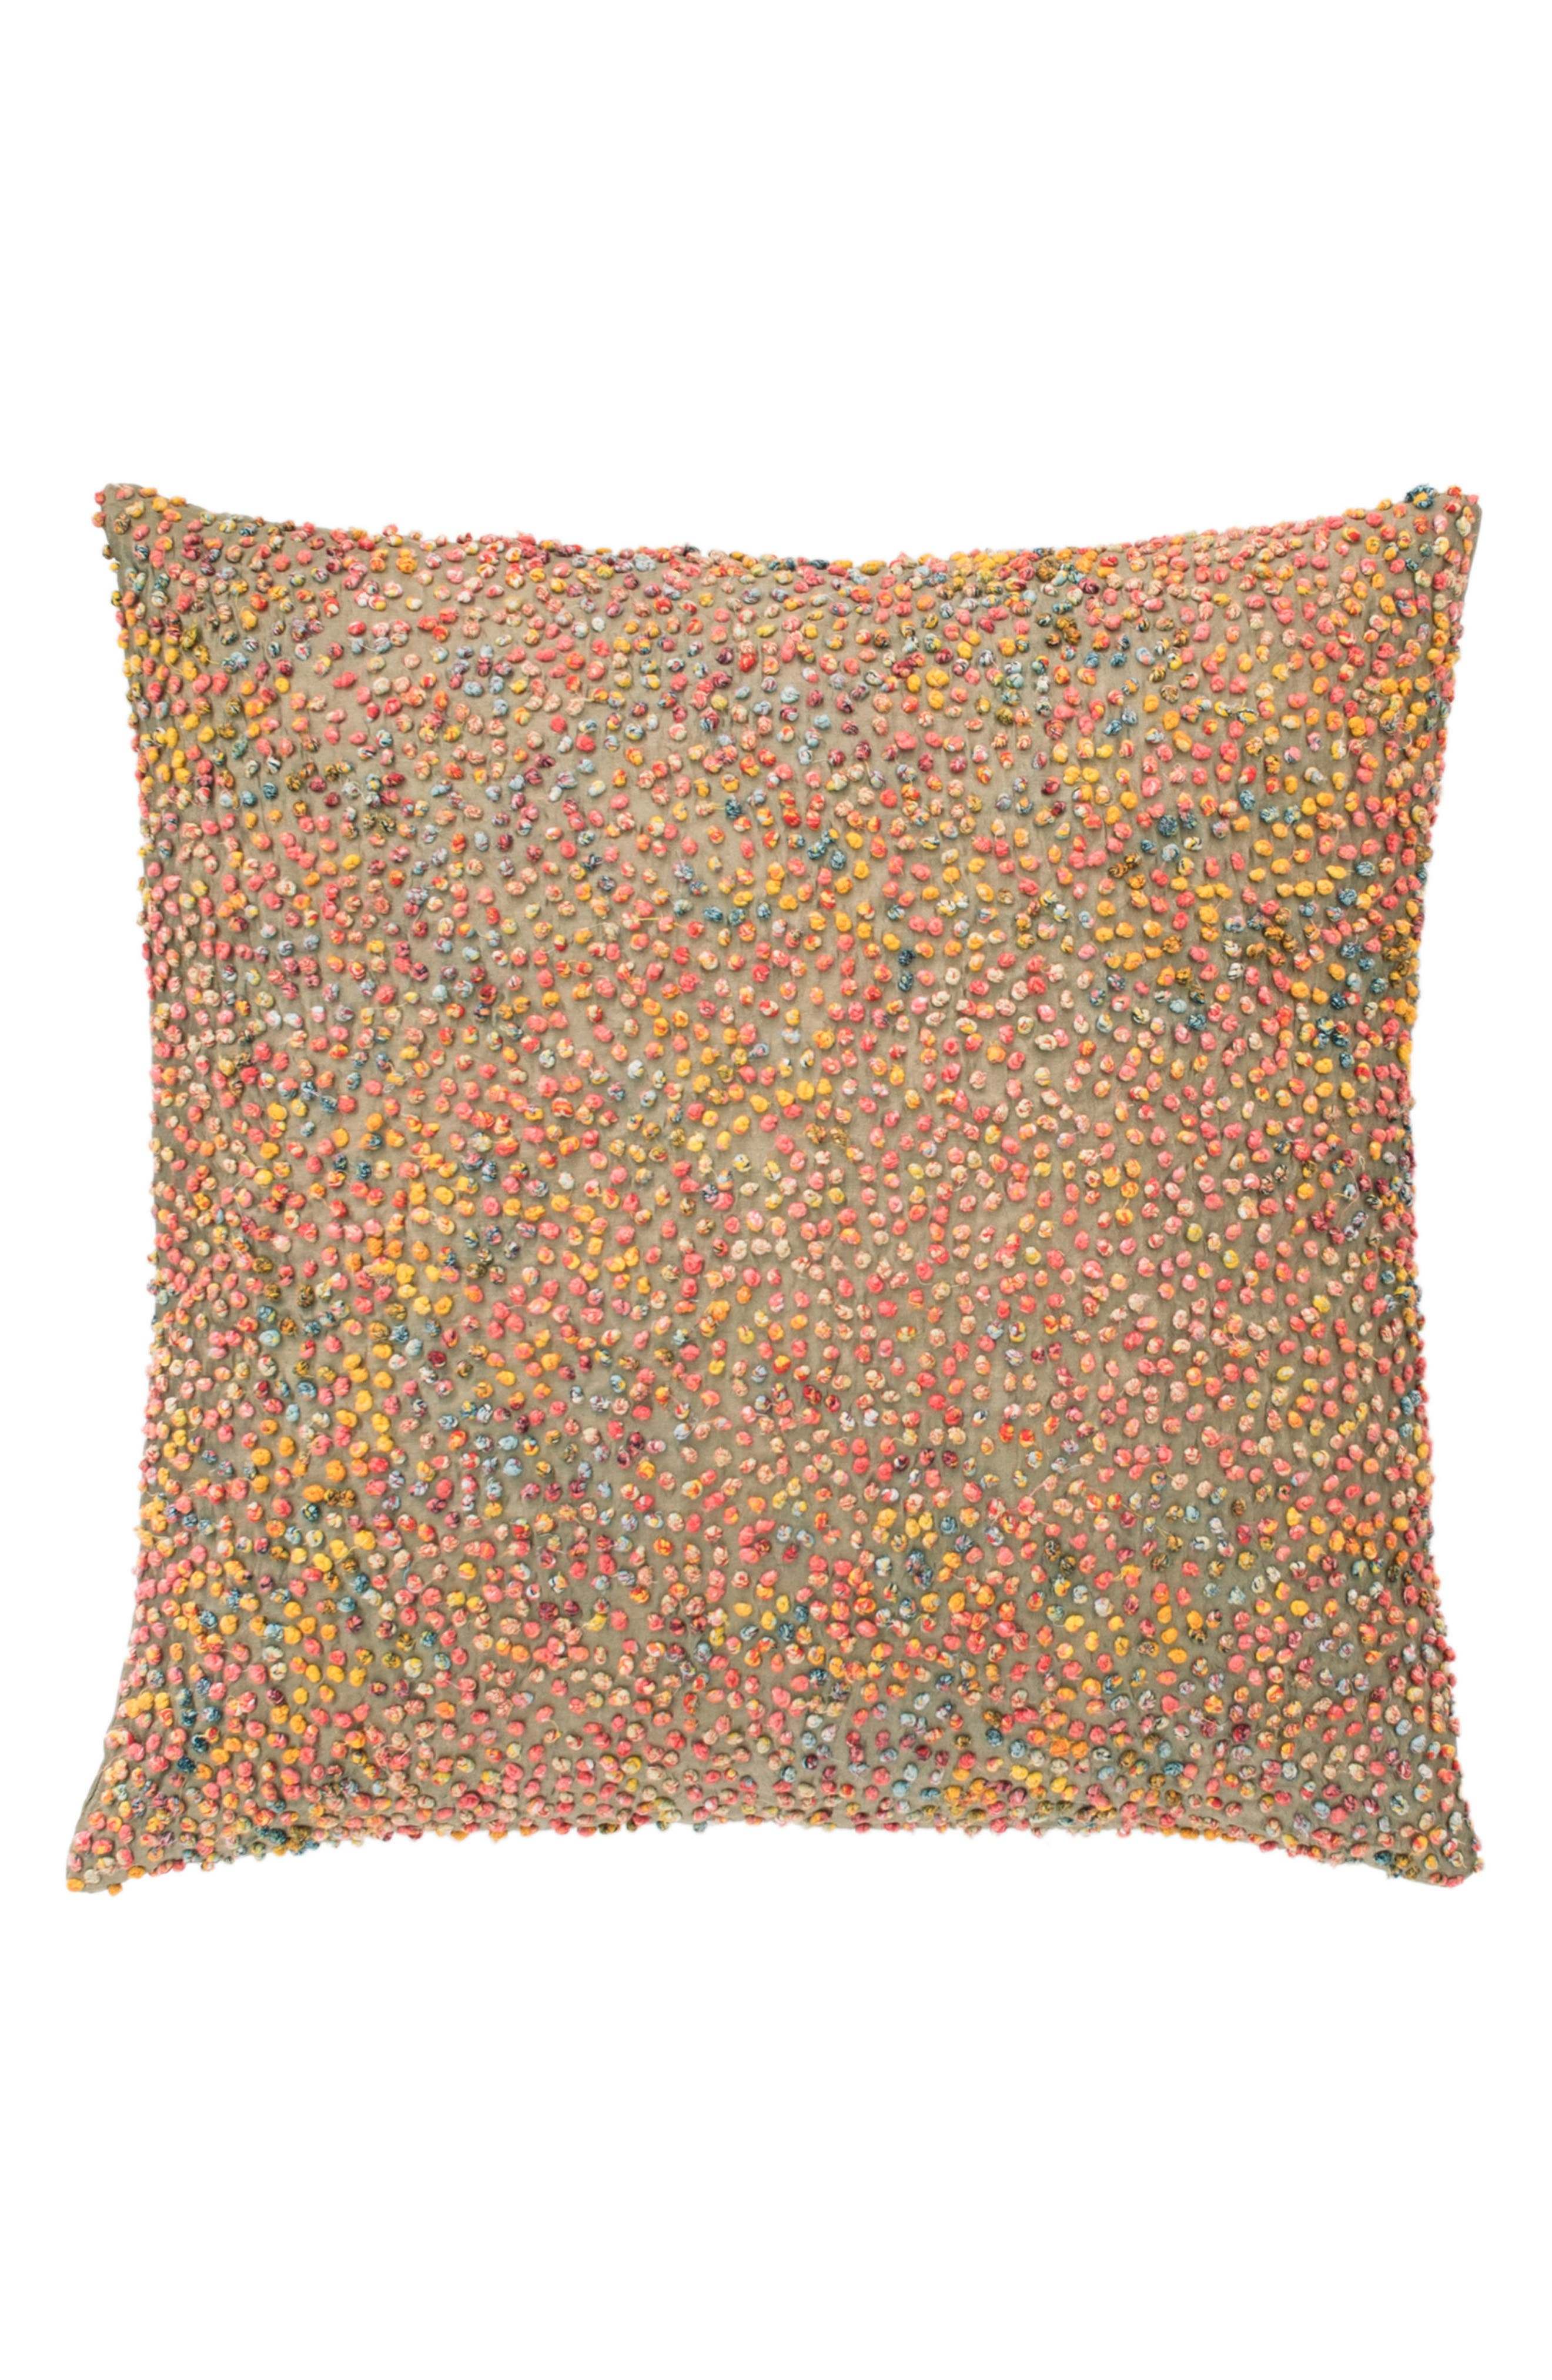 Cosmic Embroidered Accent Pillow,                         Main,                         color, PINK